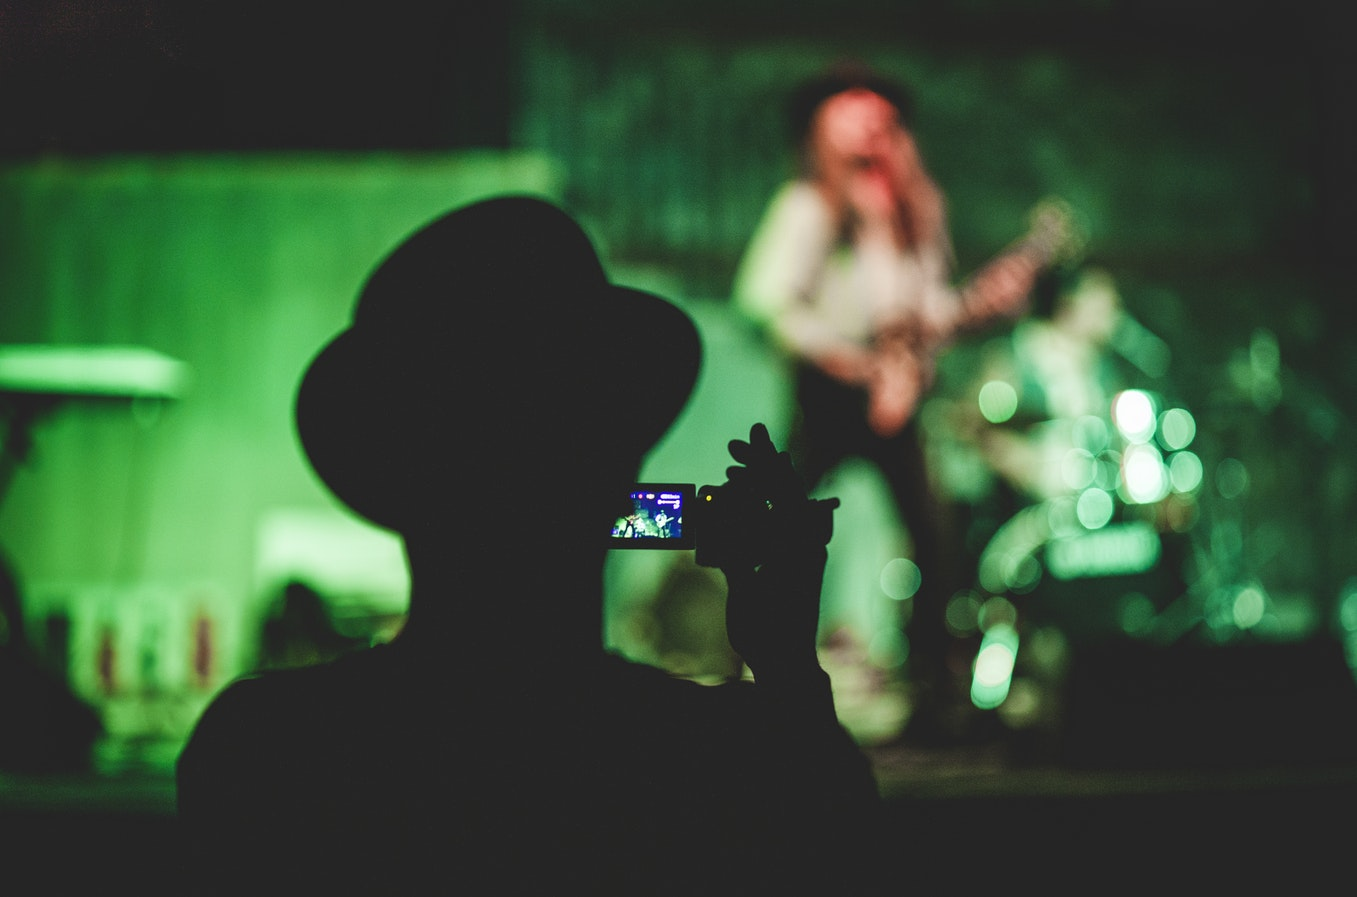 Man in hat recording video at gig - Choosing the best video camera for beginners